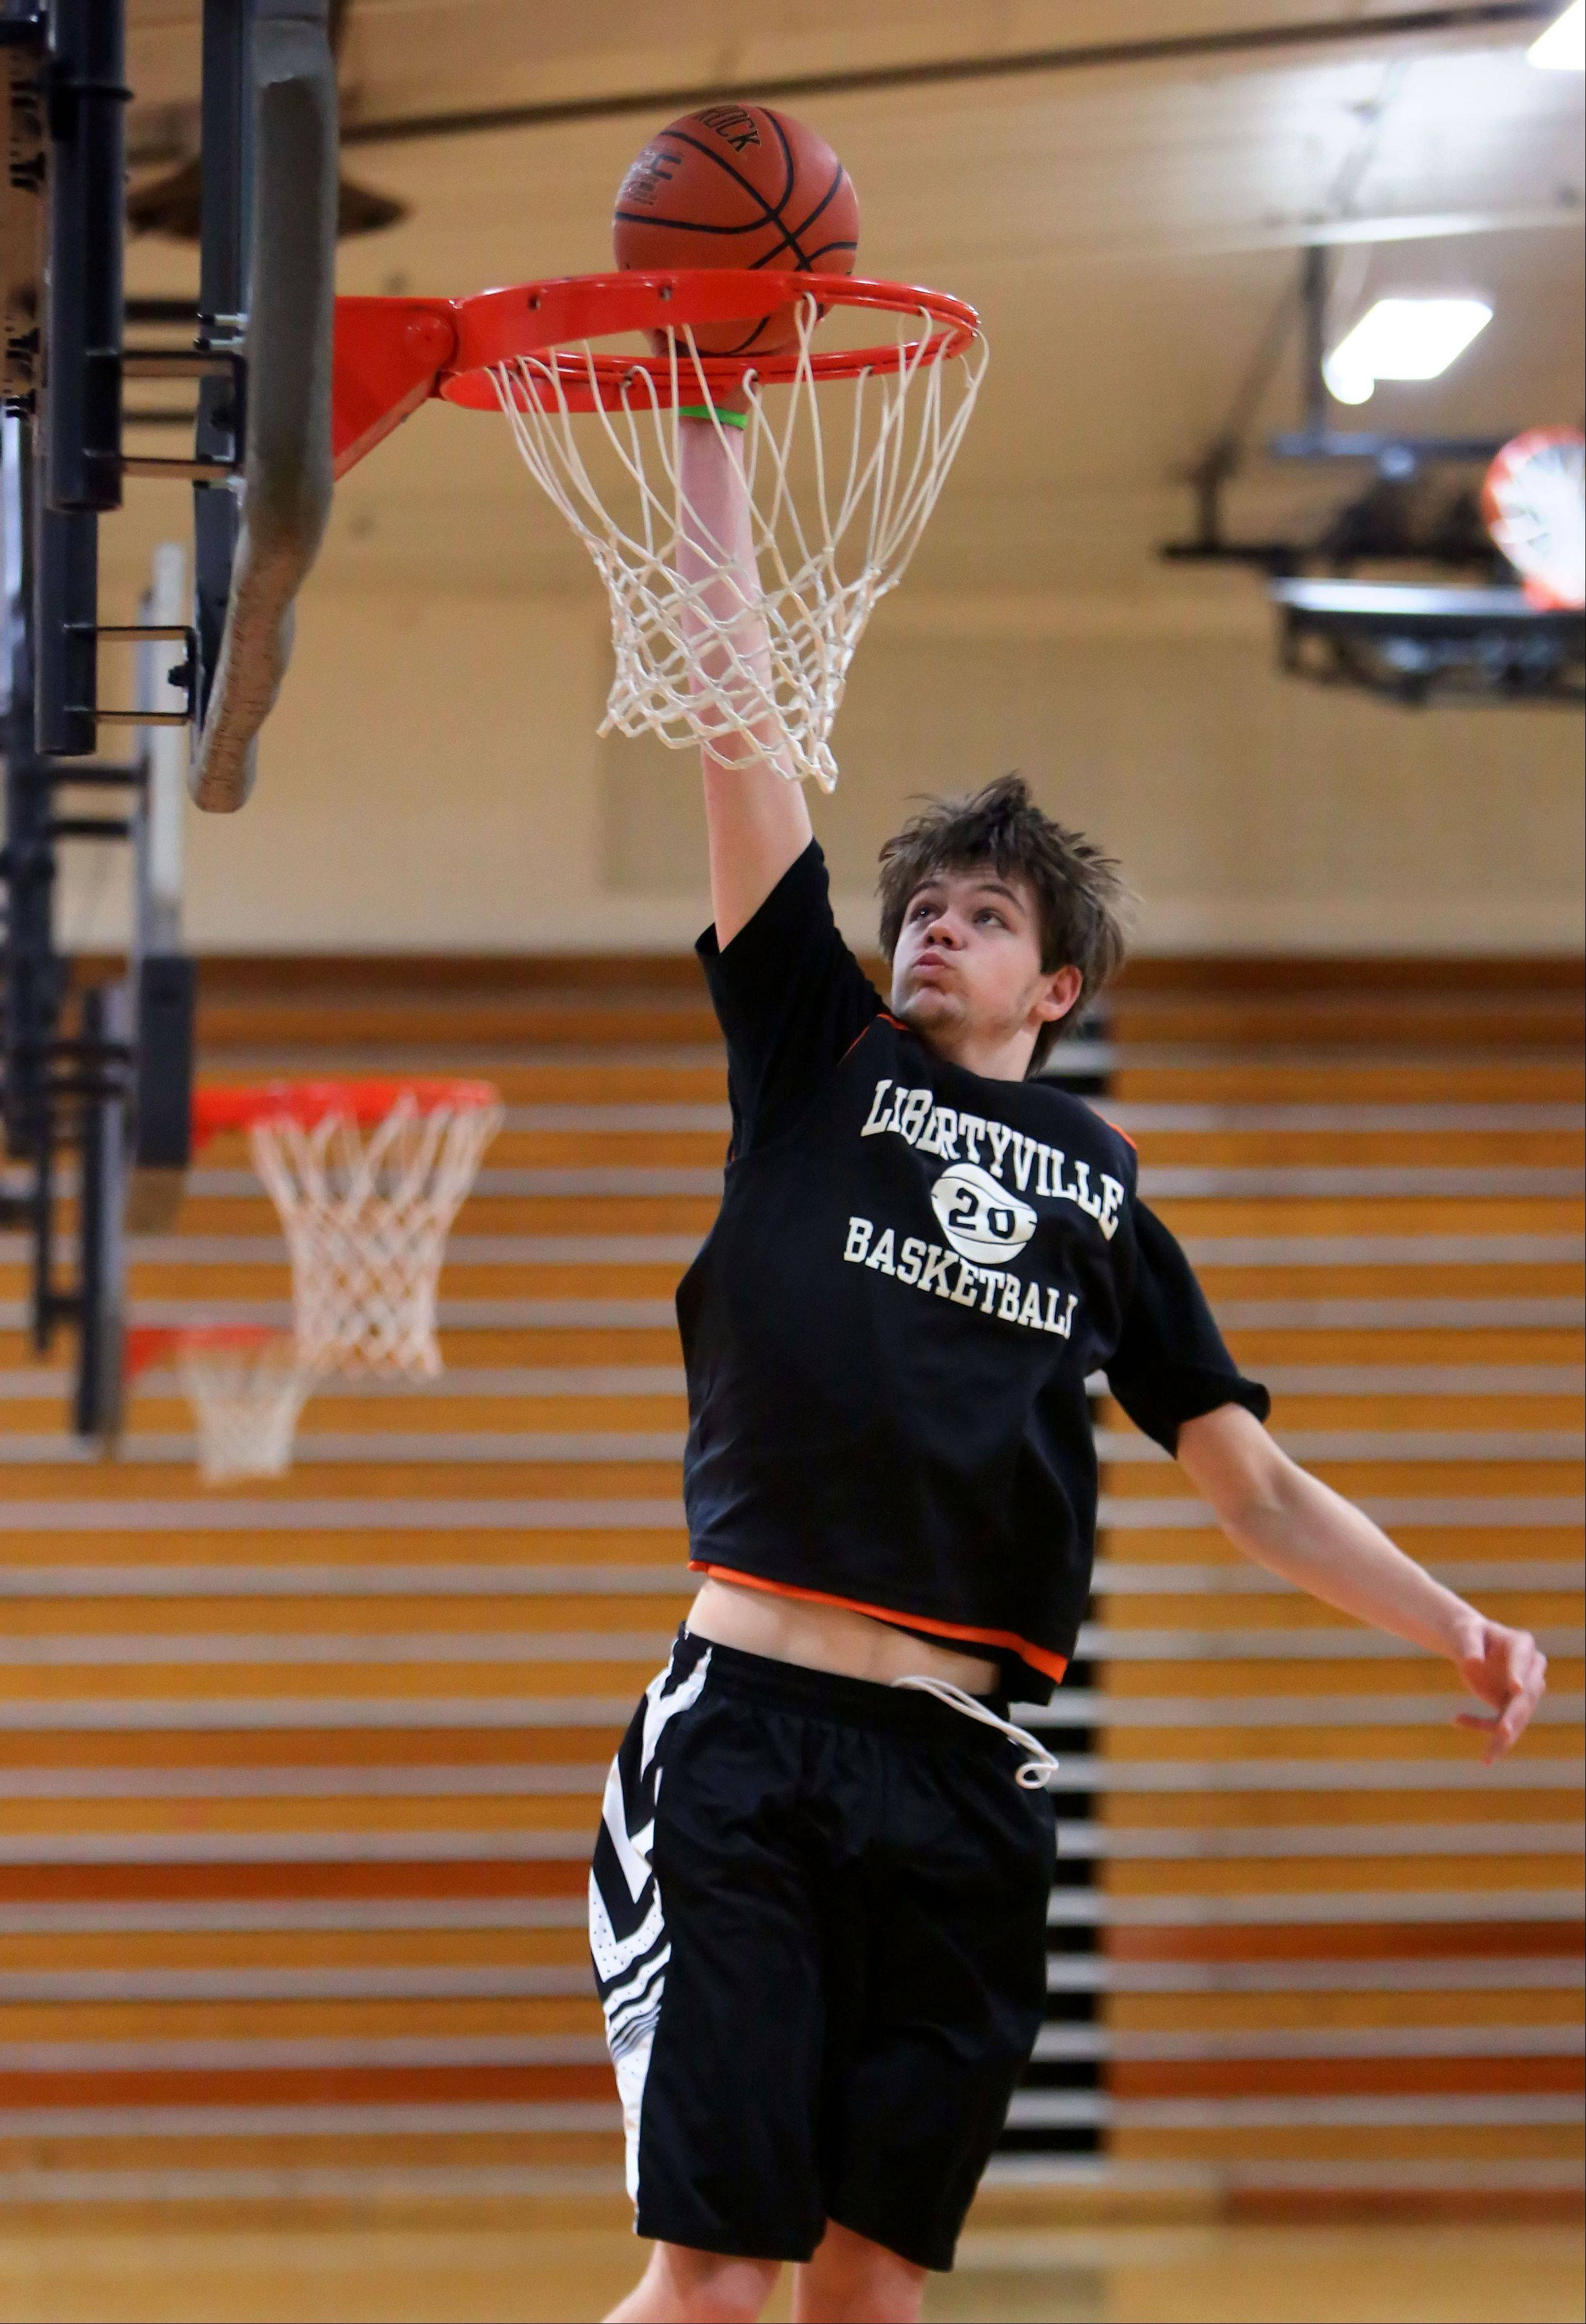 Libertyville center Joe Borcia goes in for a dunk during practice. Borcia is developing into a very impressive player. He's one of the better big men in the NSC.